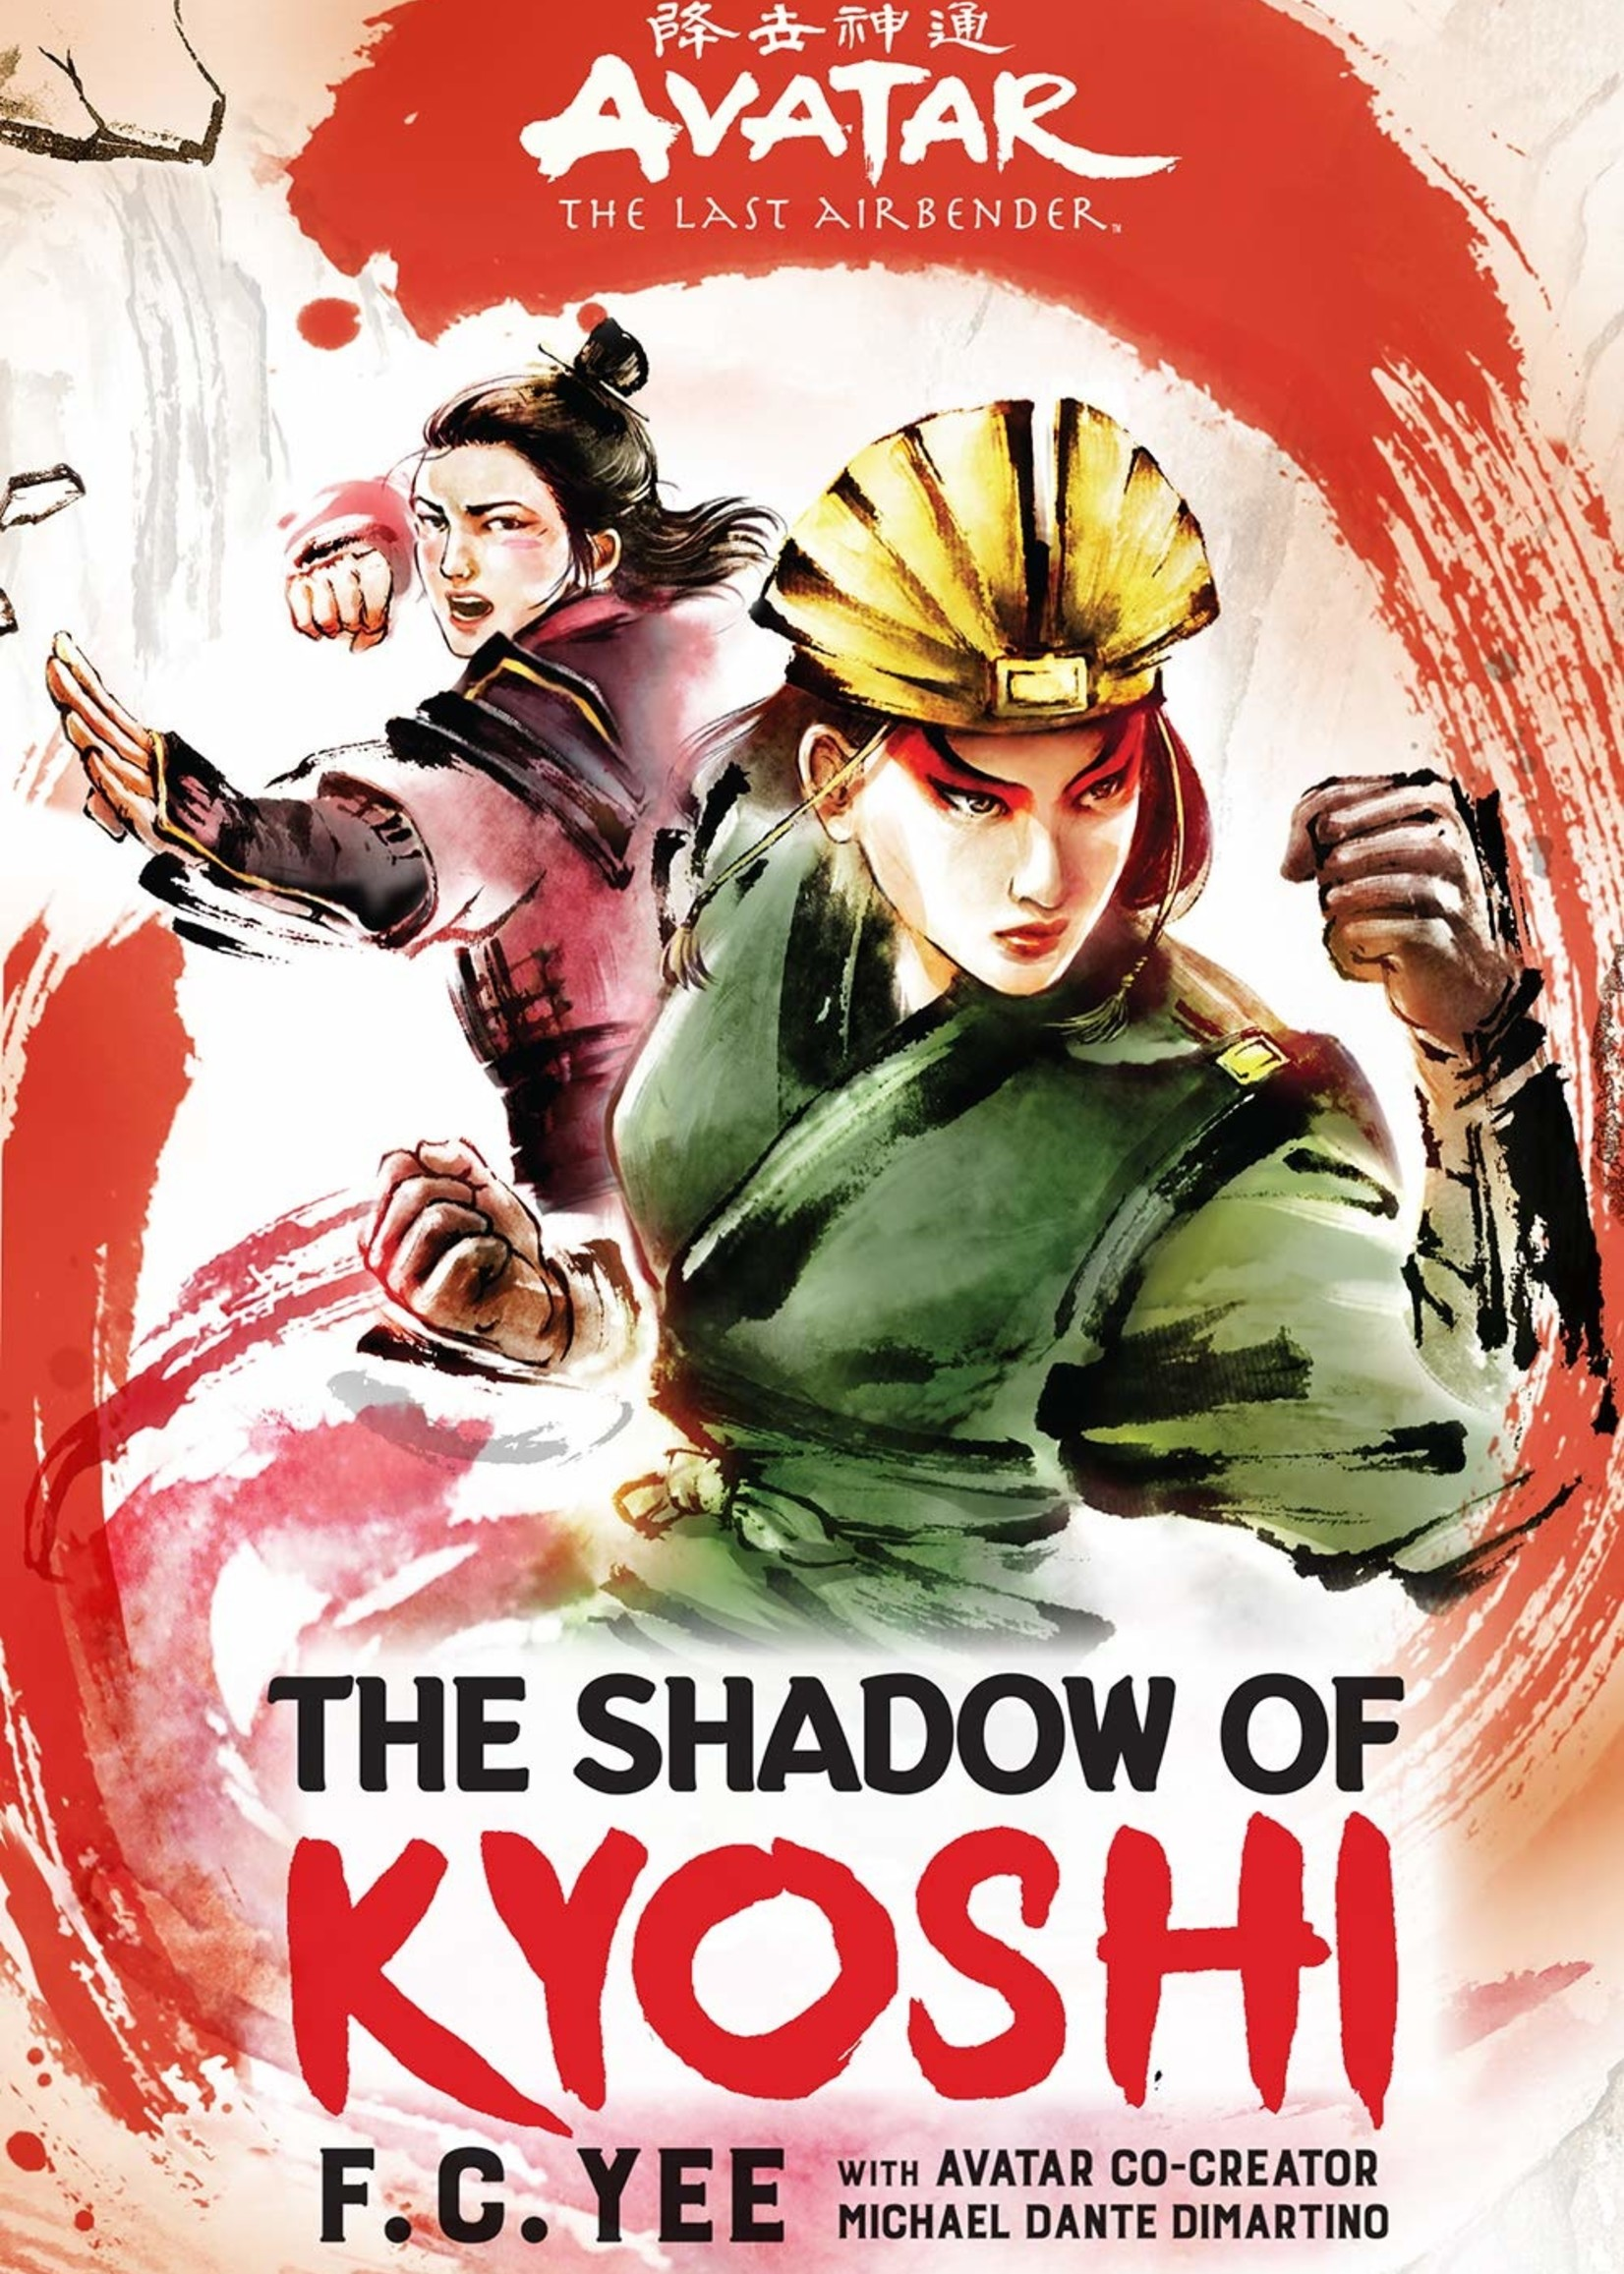 Avatar the Last Airbender: Kyoshi Novels #02, The Shadow of Kyoshi - Hardcover